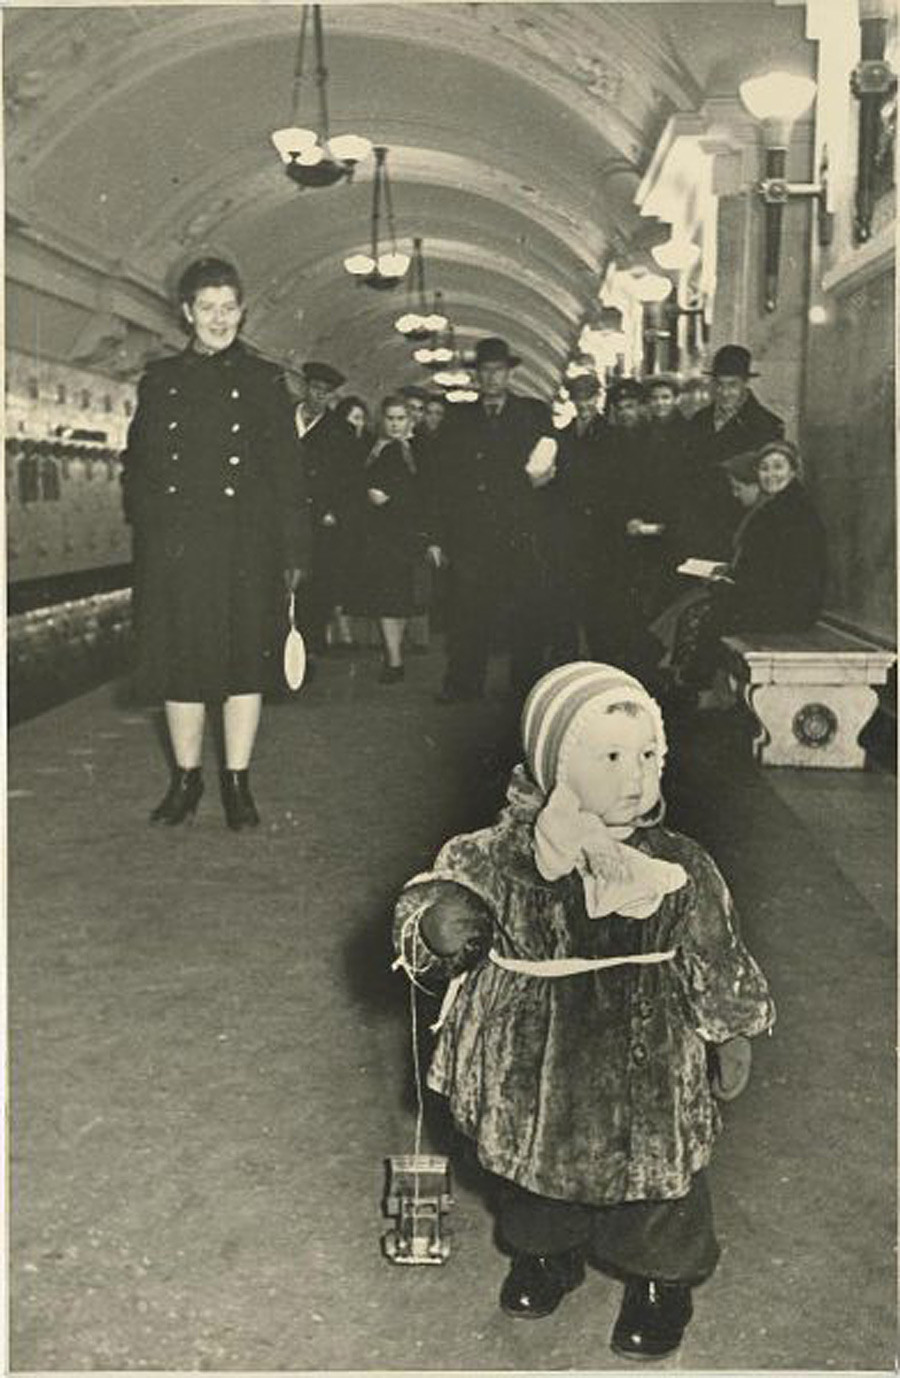 In the subway, 1950s